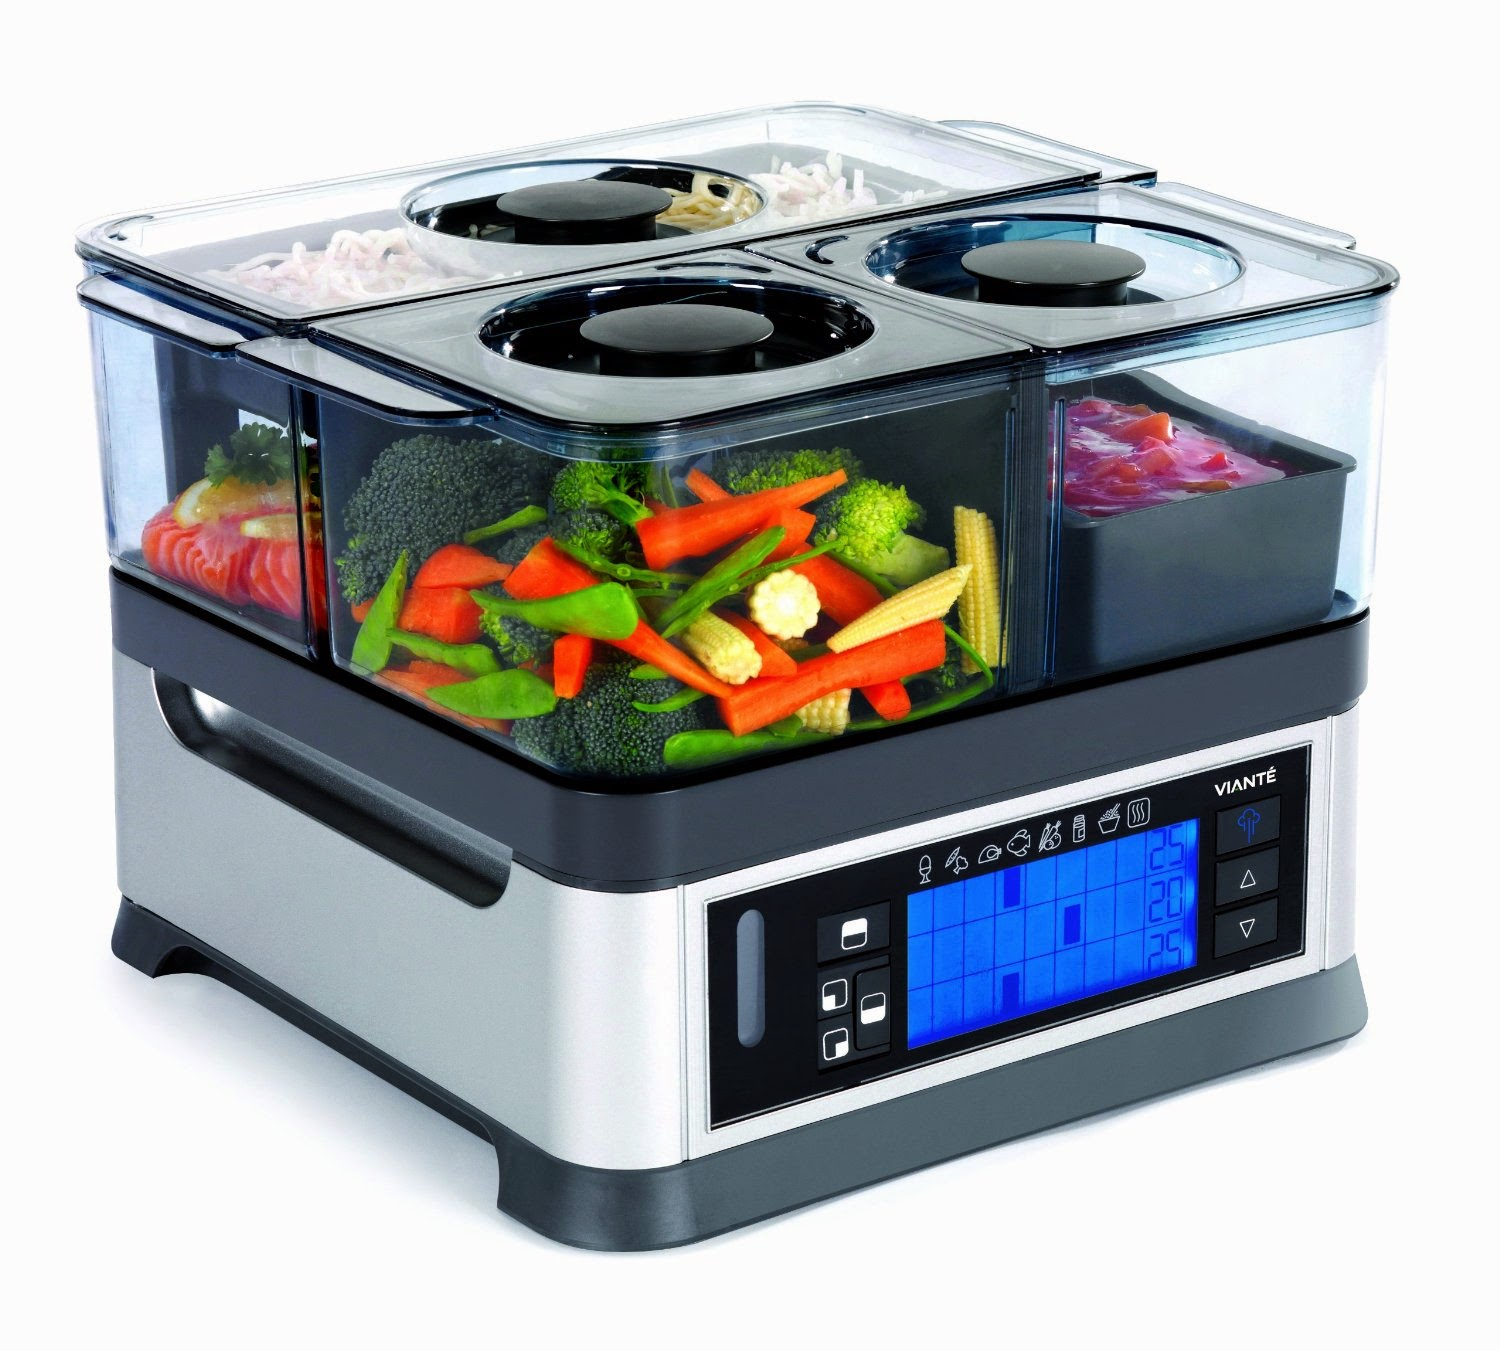 Viante CUC-30ST Intellisteam Counter Top Food Steamer with 3 Separate Compartments, picture, review features & specifications